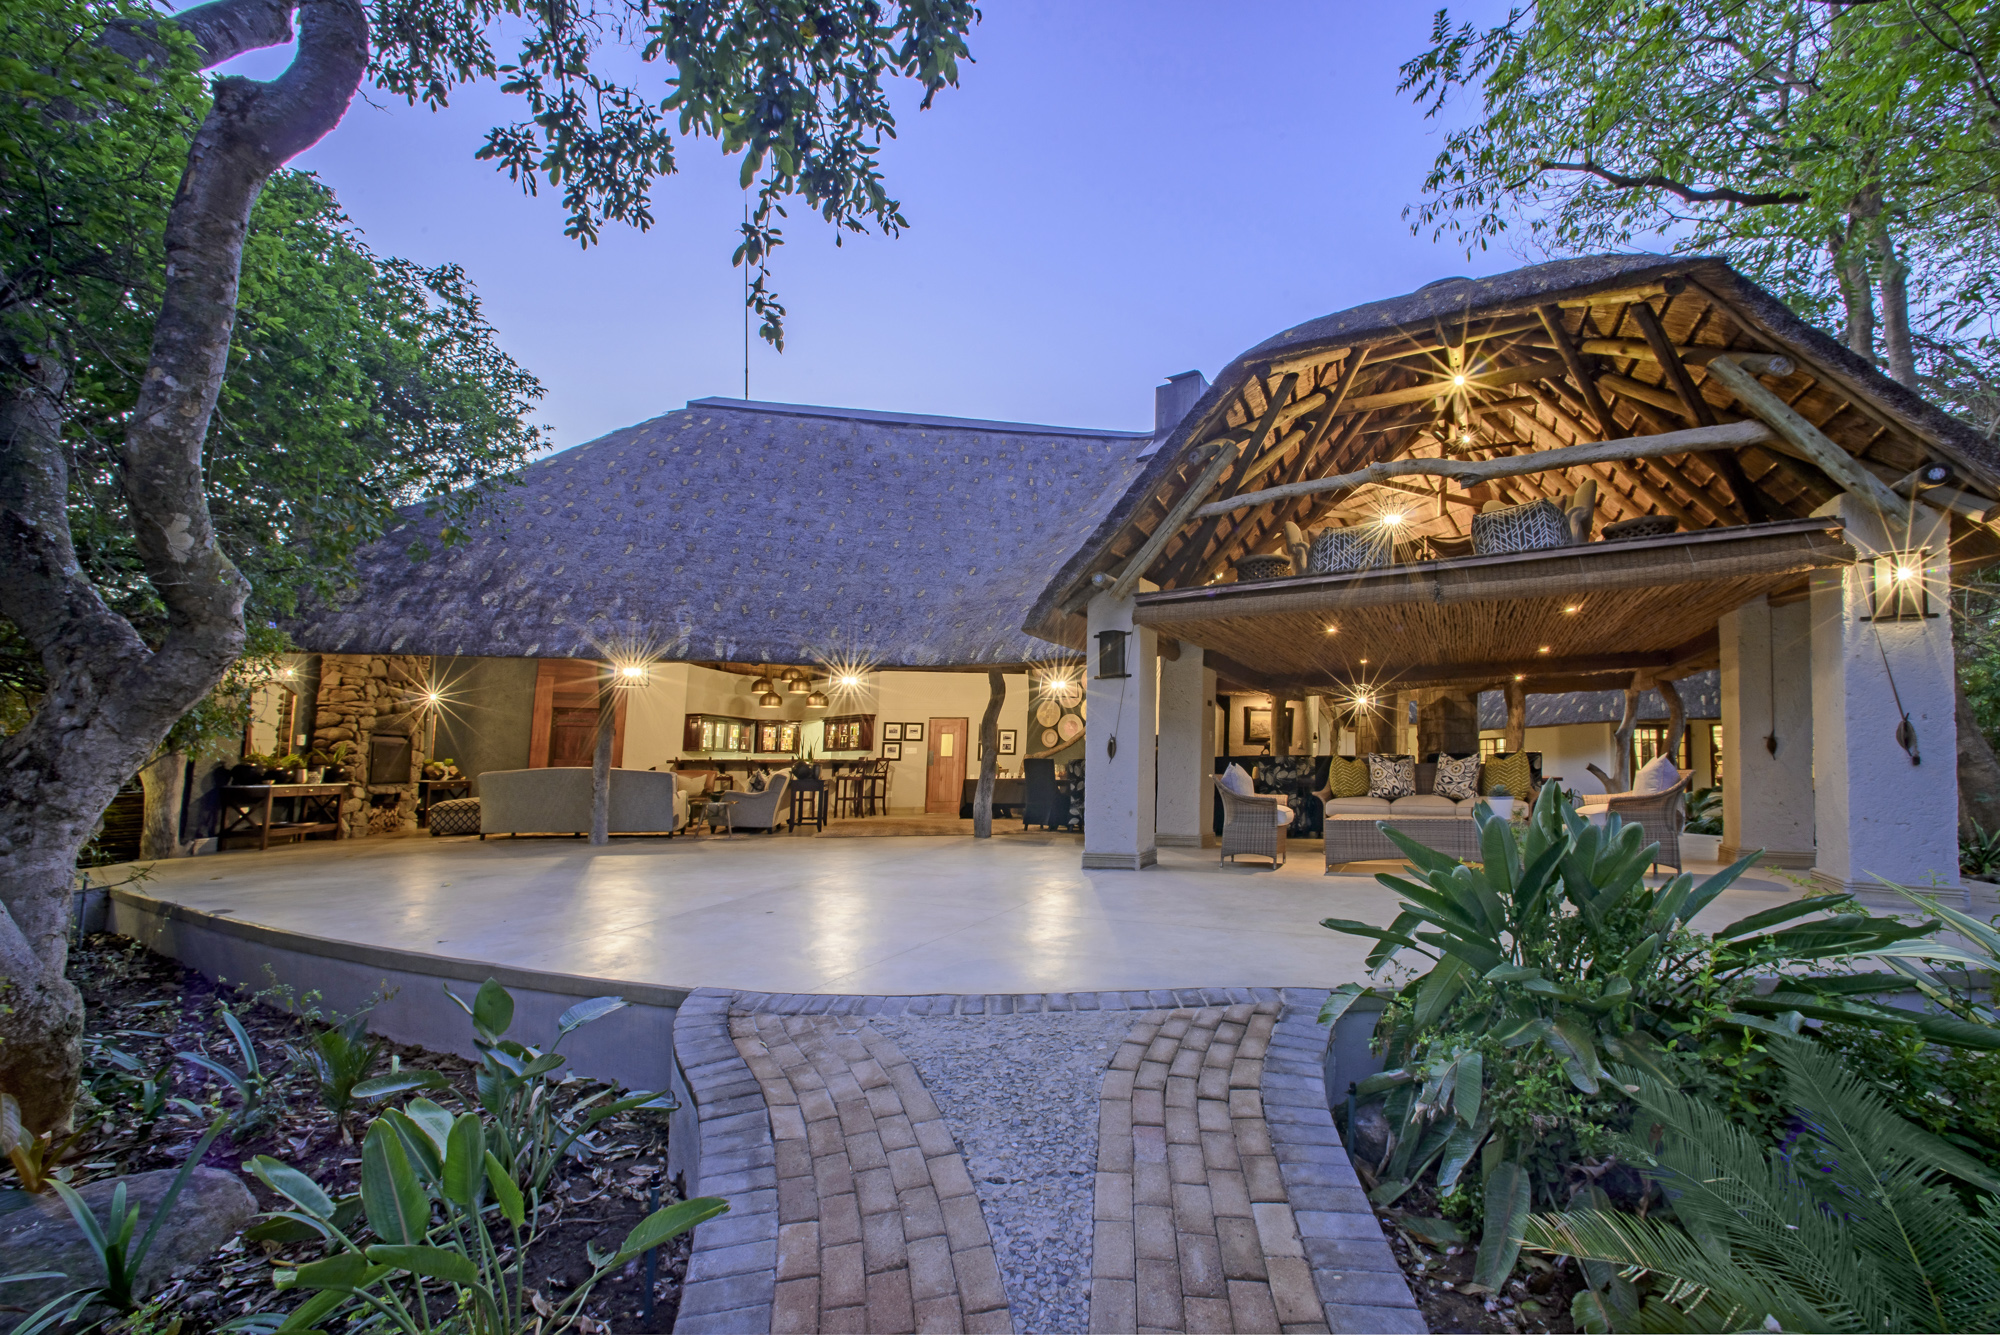 Savanna Main lodge